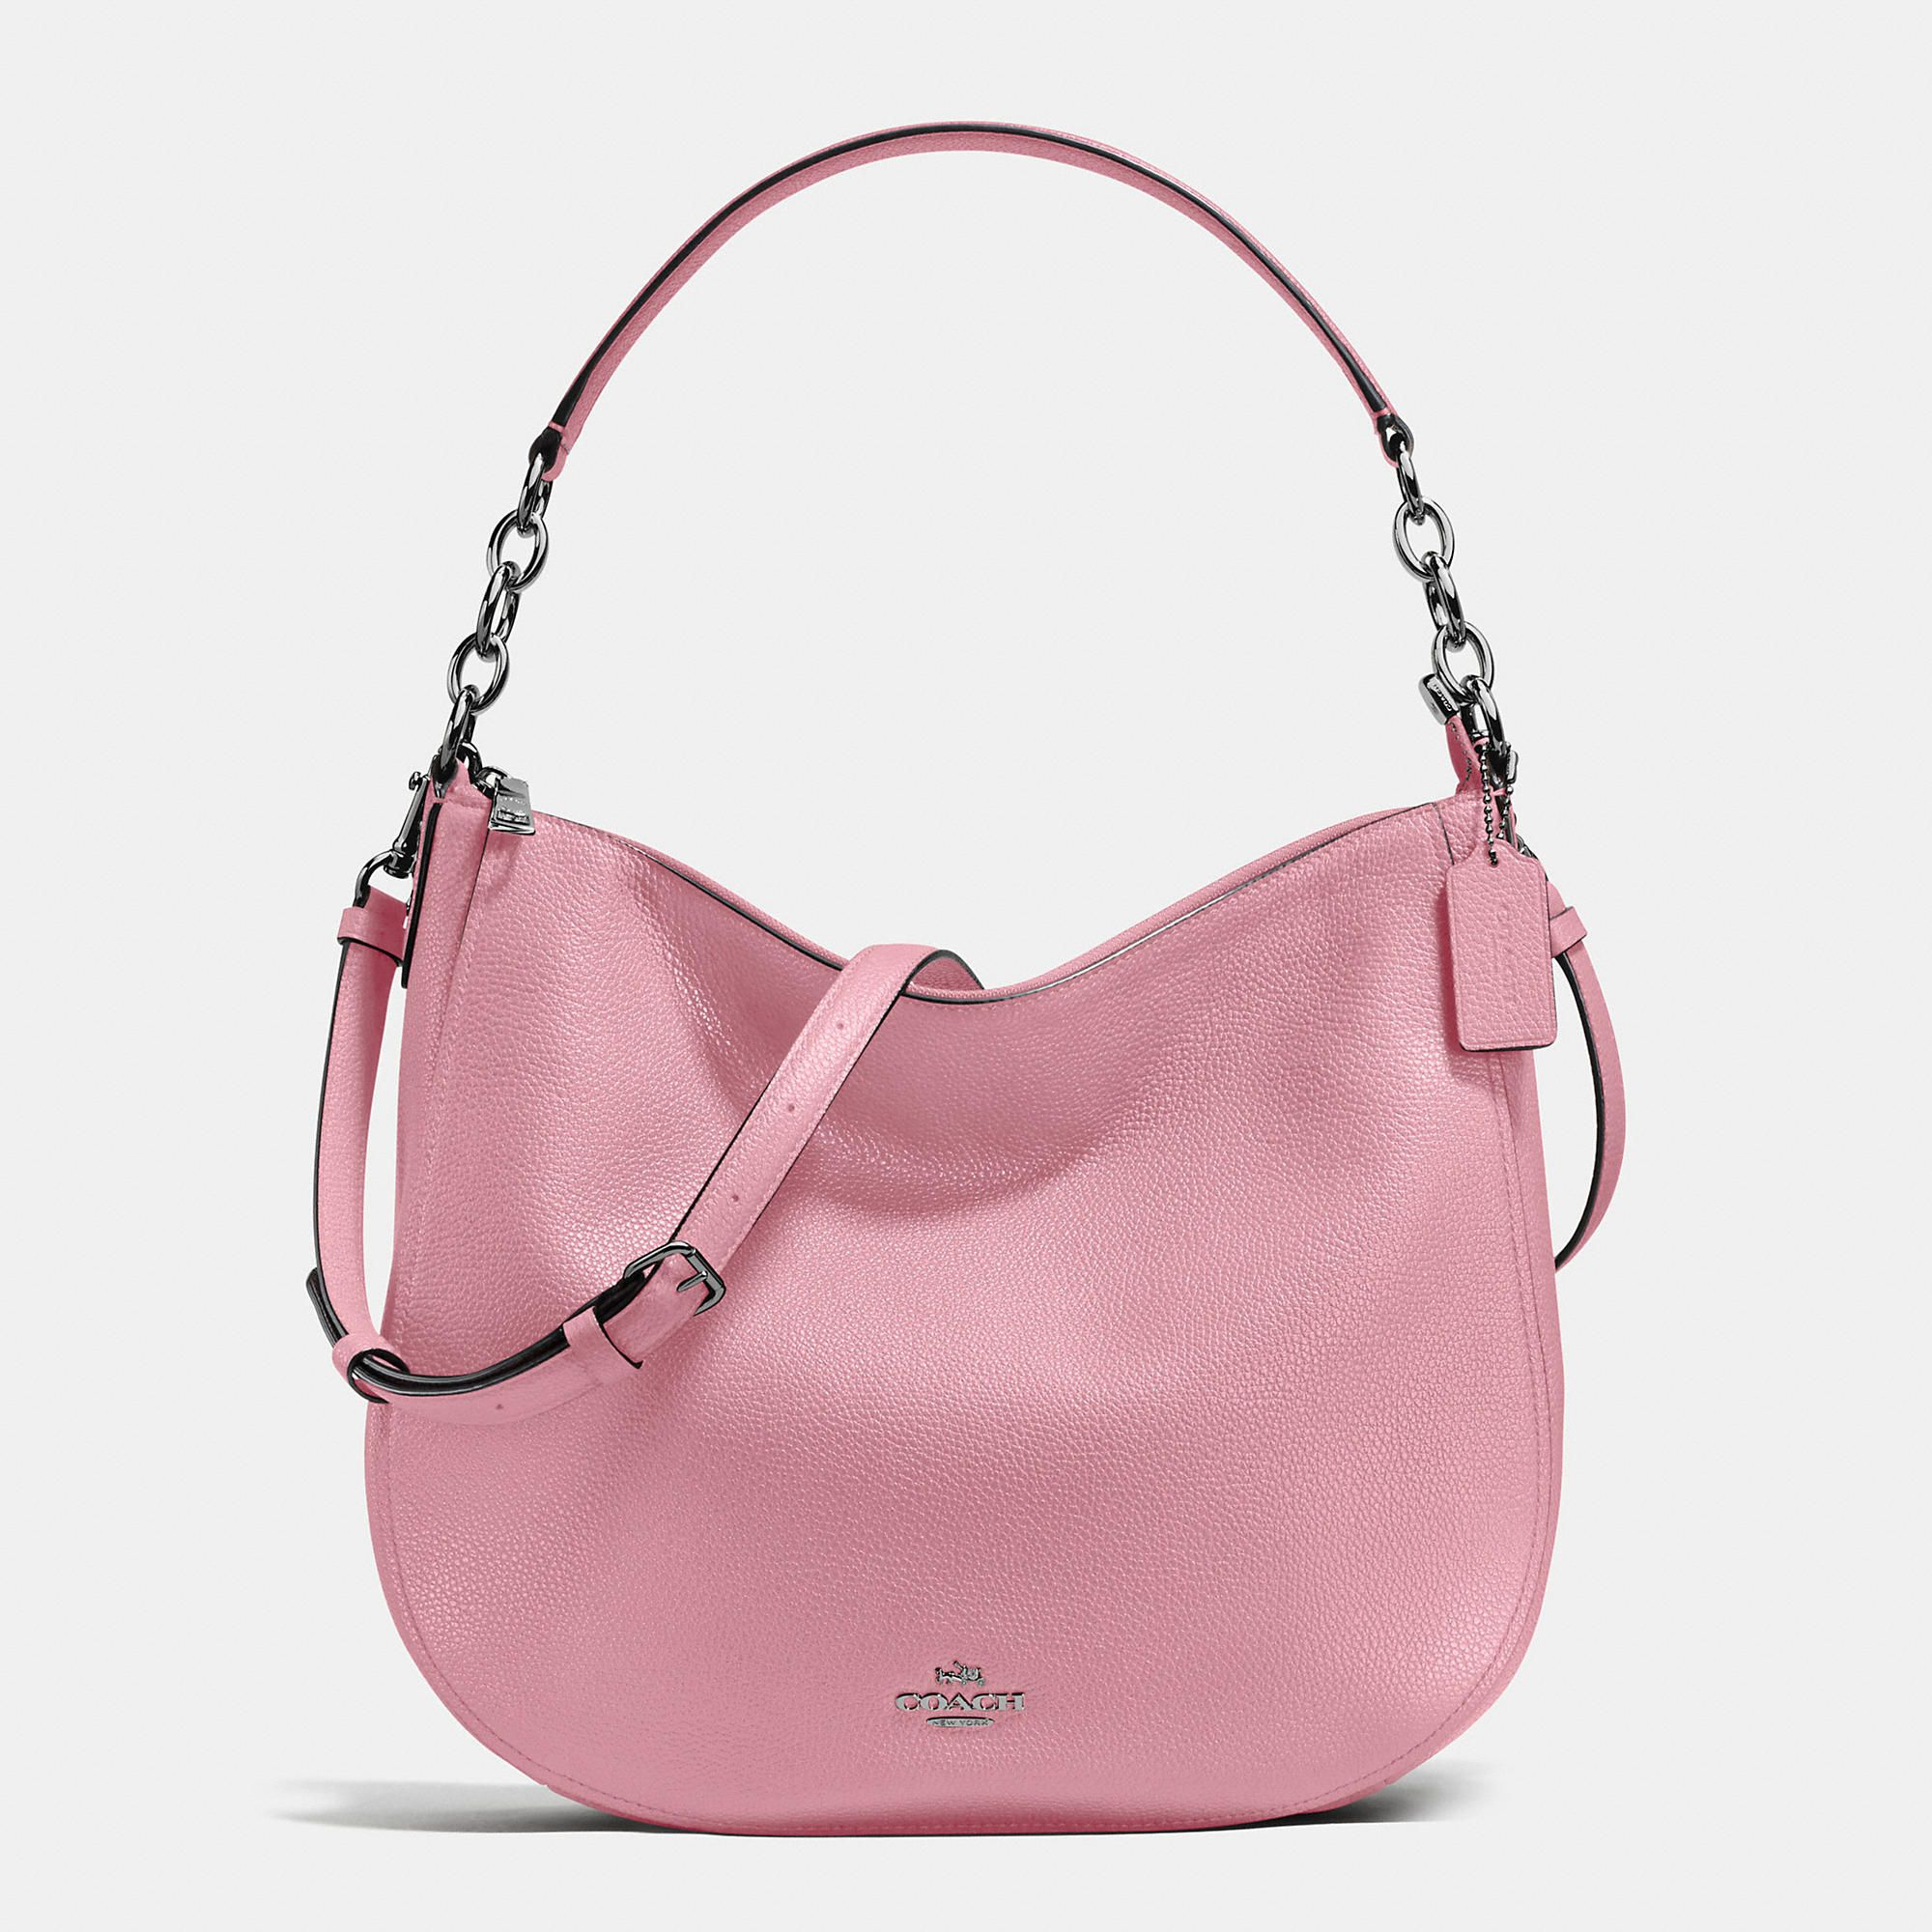 COACH . #coach #bags #shoulder bags #hand bags #leather #hobo #lining #